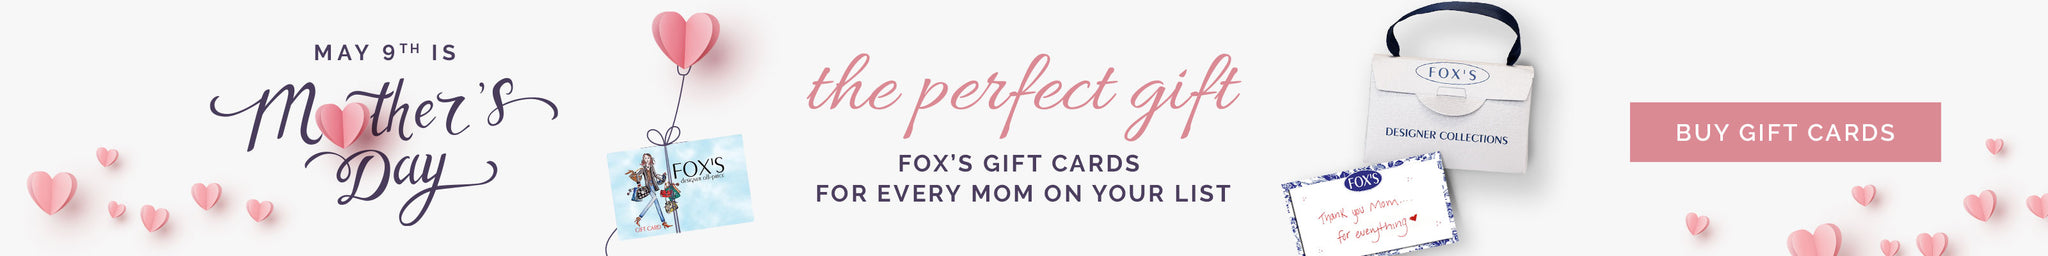 May 9th is Mother's Day. The Perfect Gift. Fox's Gift Cards for every Mom on your list. Buy Gift Cards.